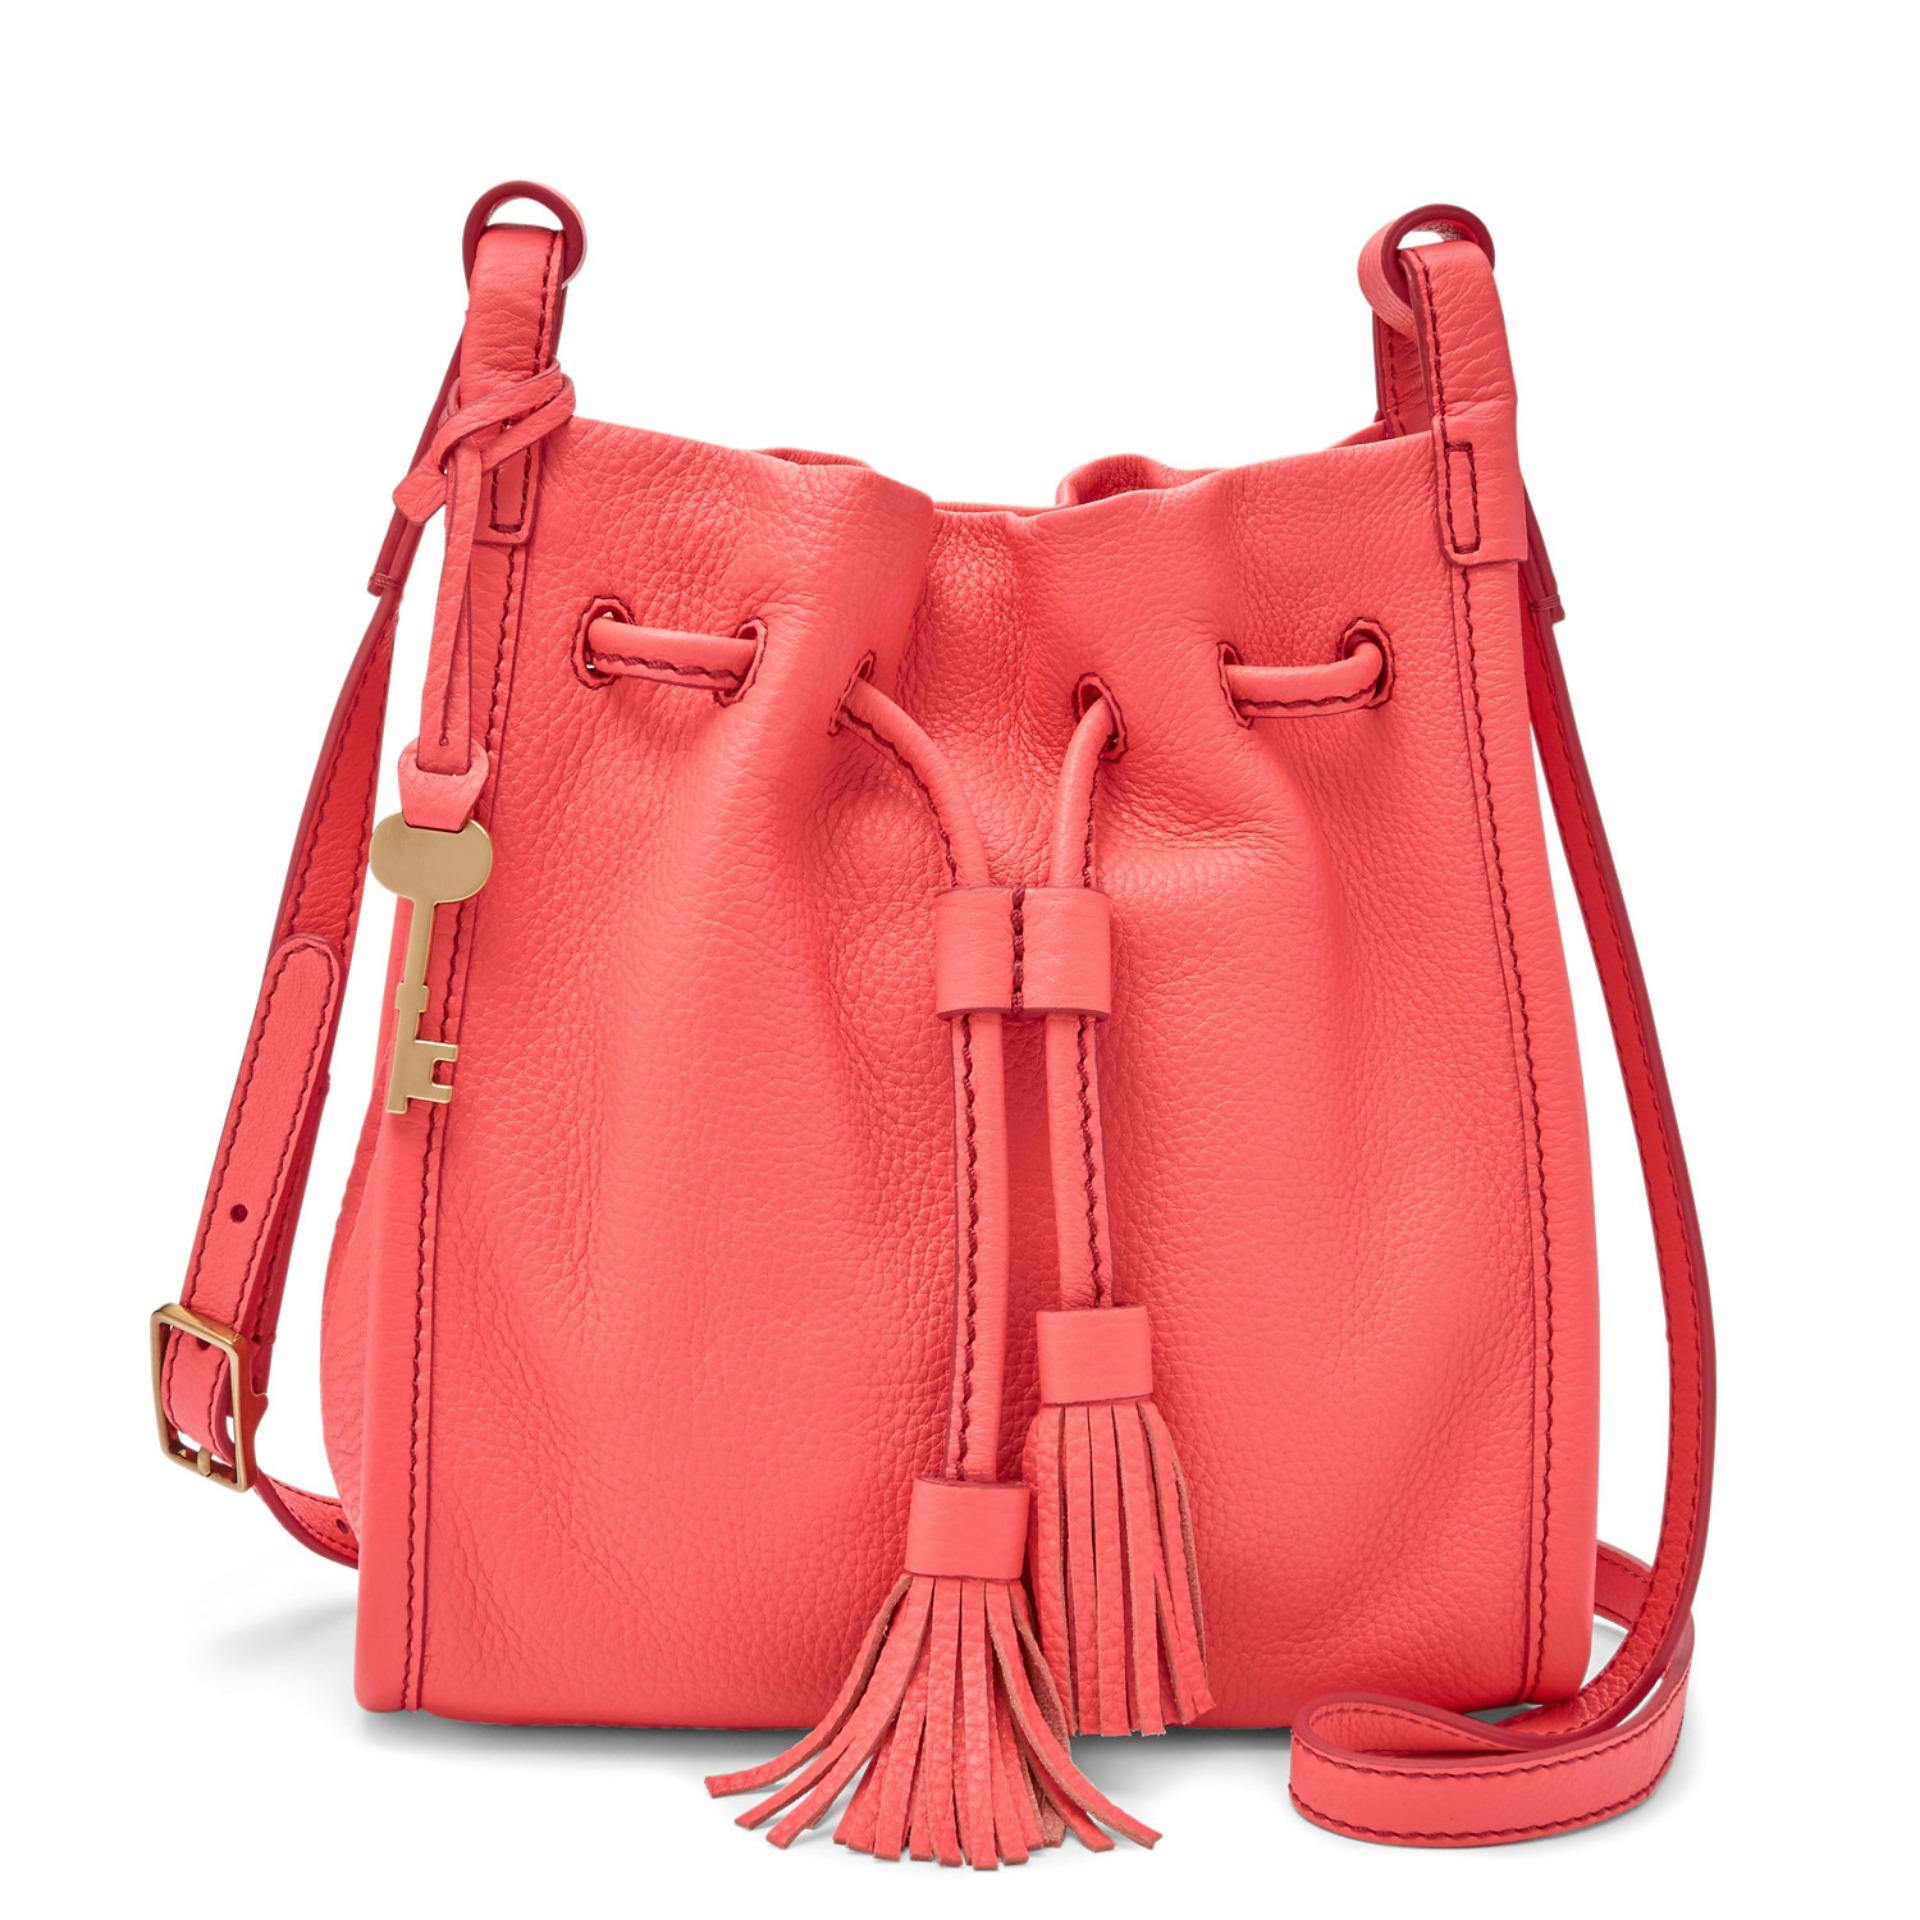 Fossil Claire - Leather - Small Drawstring - Pink  - Tas Wanita - ZB7110-281 - SL